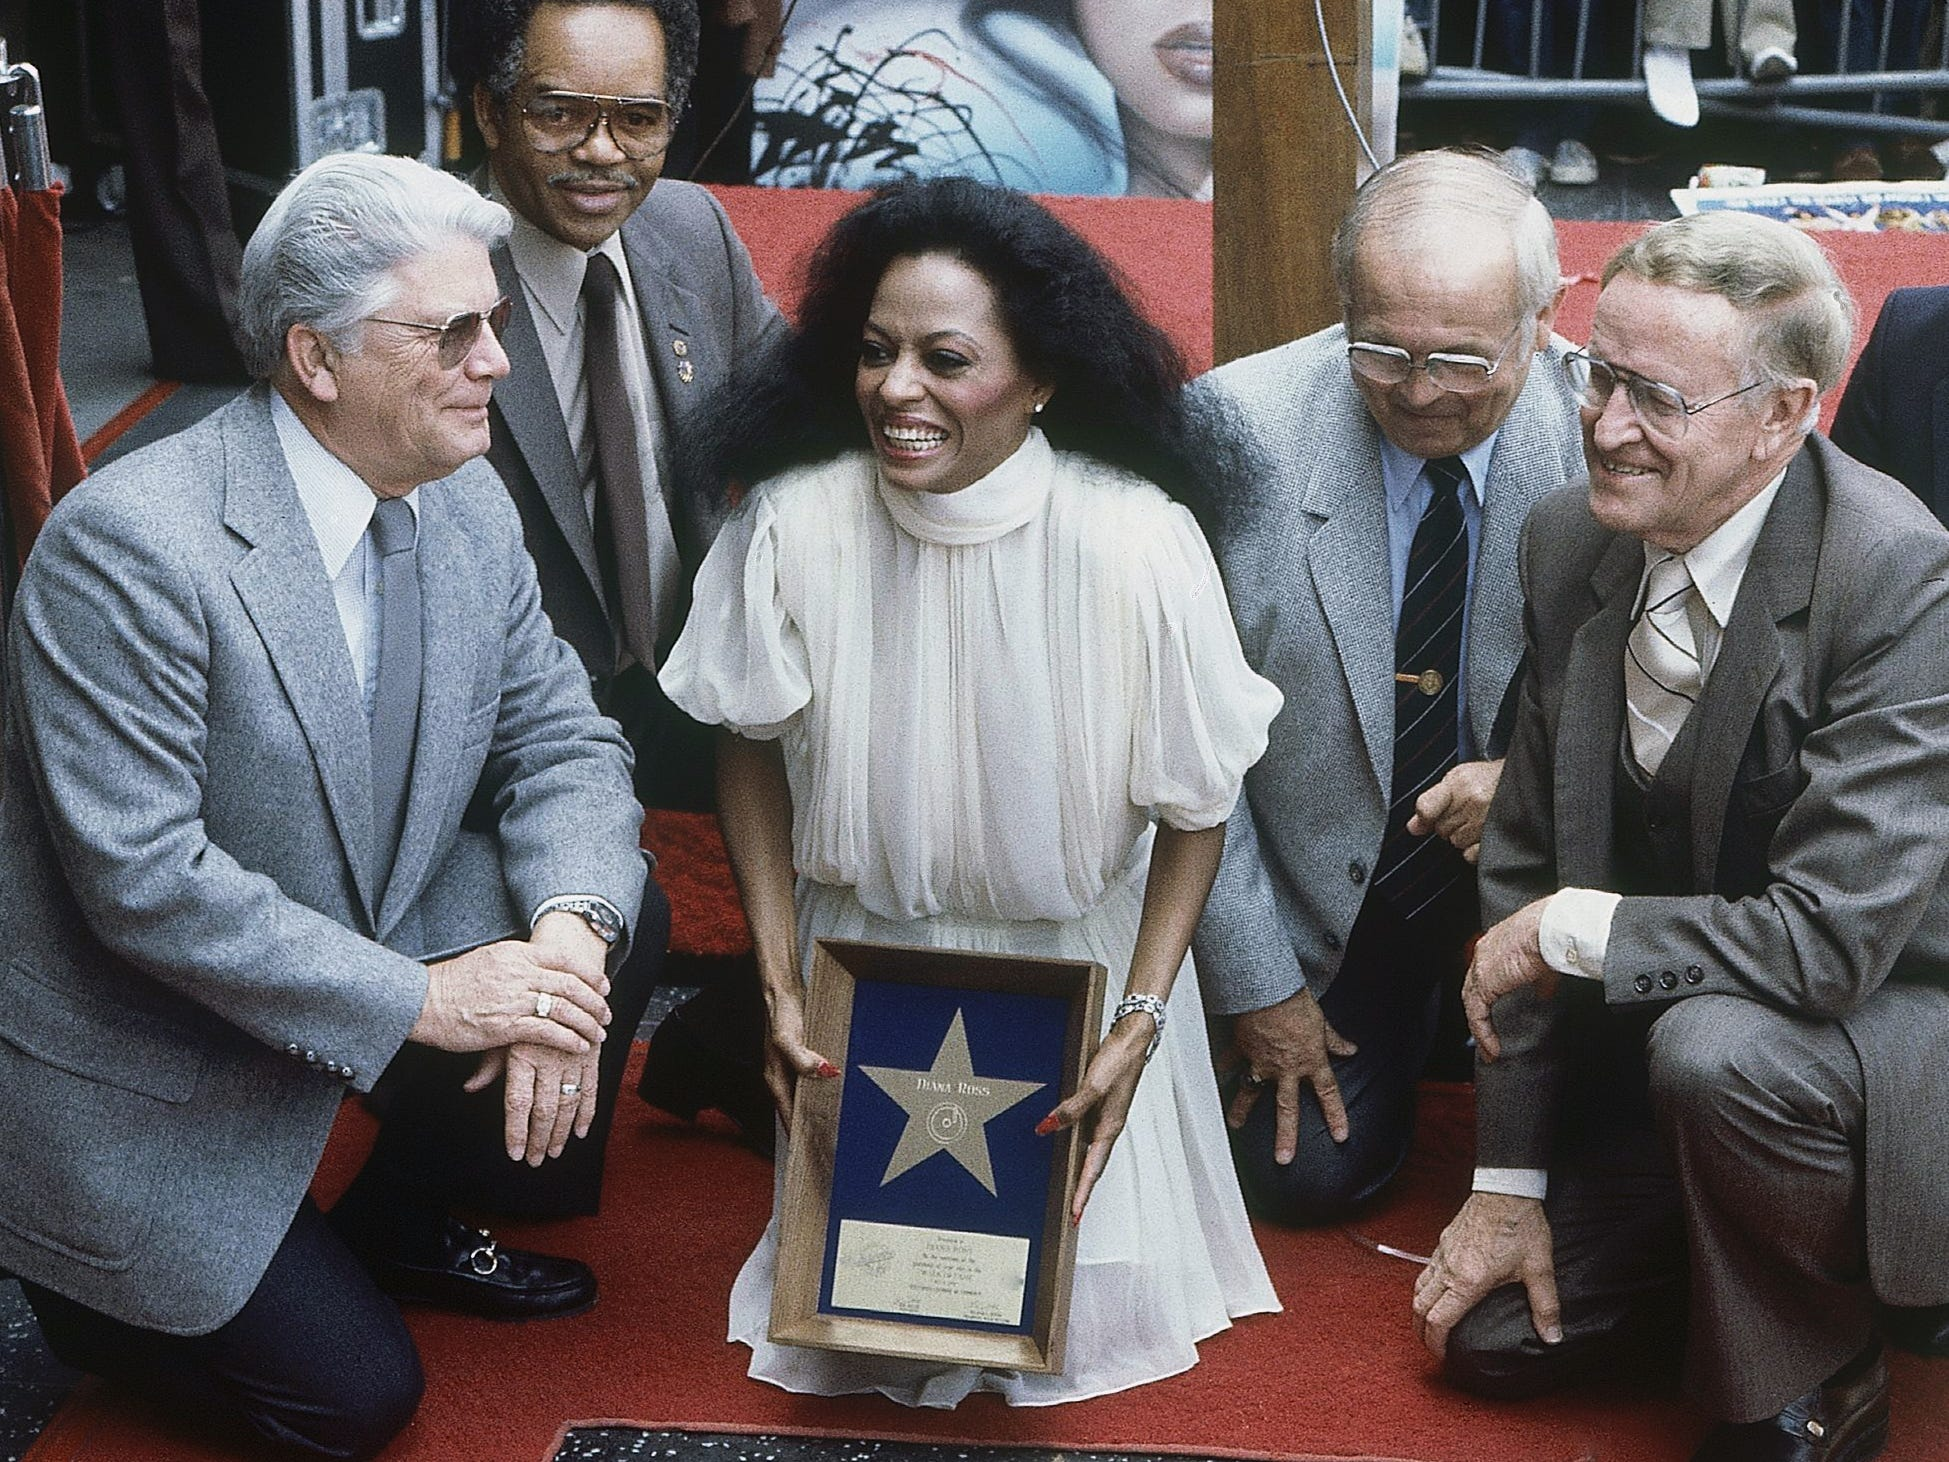 On May 6, 1982, Diana Ross is given her star on Hollywood's Walk of Fame. Among her achievements is a dozen Top 10 singles from 1970 to 1985.